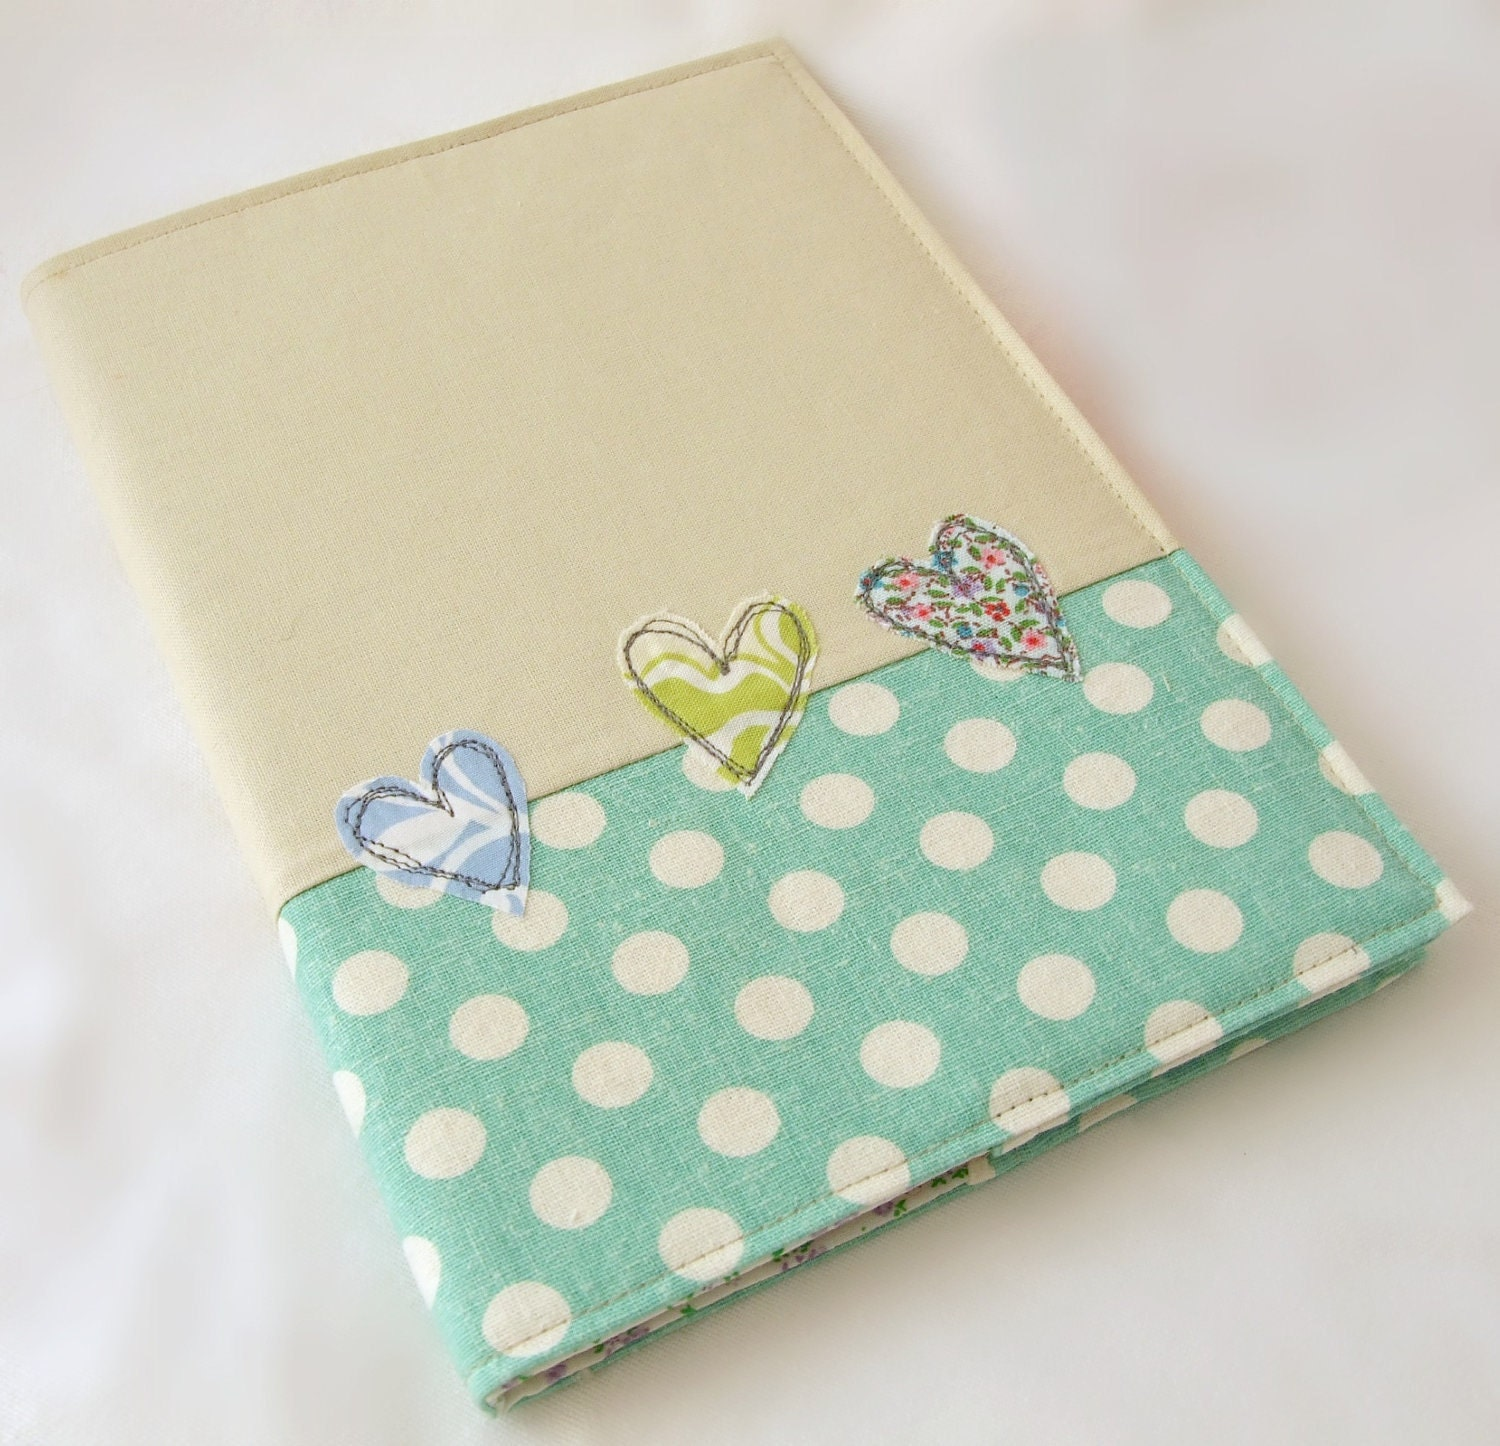 Fabric Notebook Cover : A embroidered fabric notebook cover with